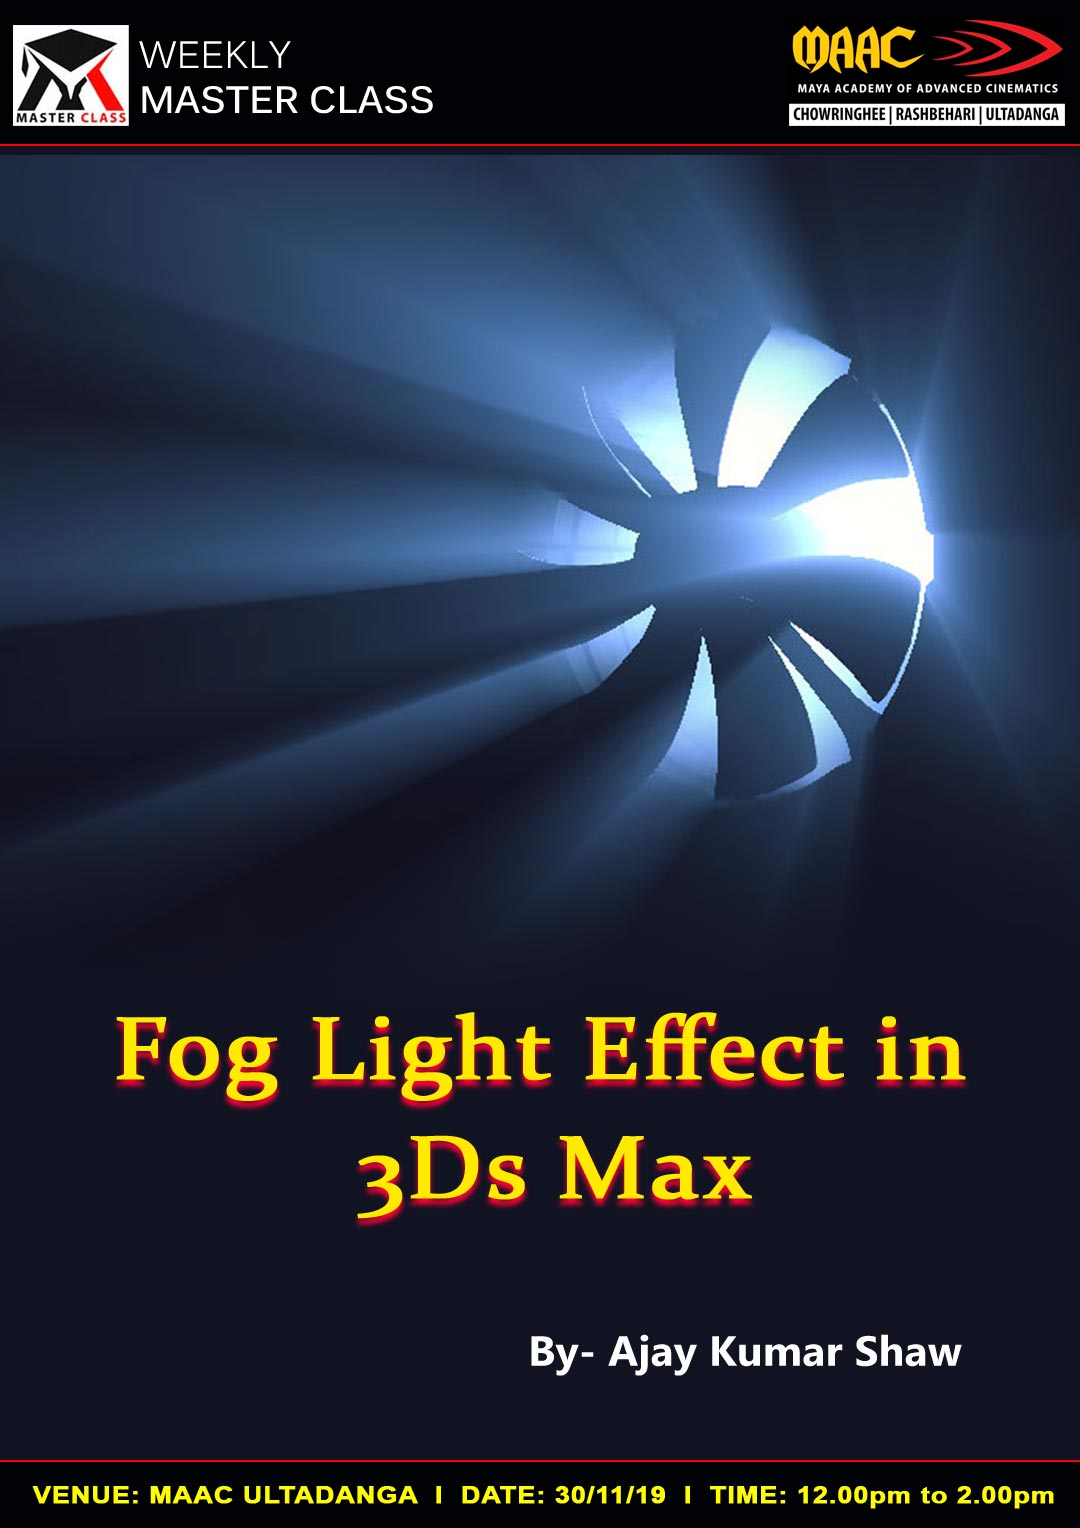 Weekly Master Class on Fog Light Effect in 3Ds Max